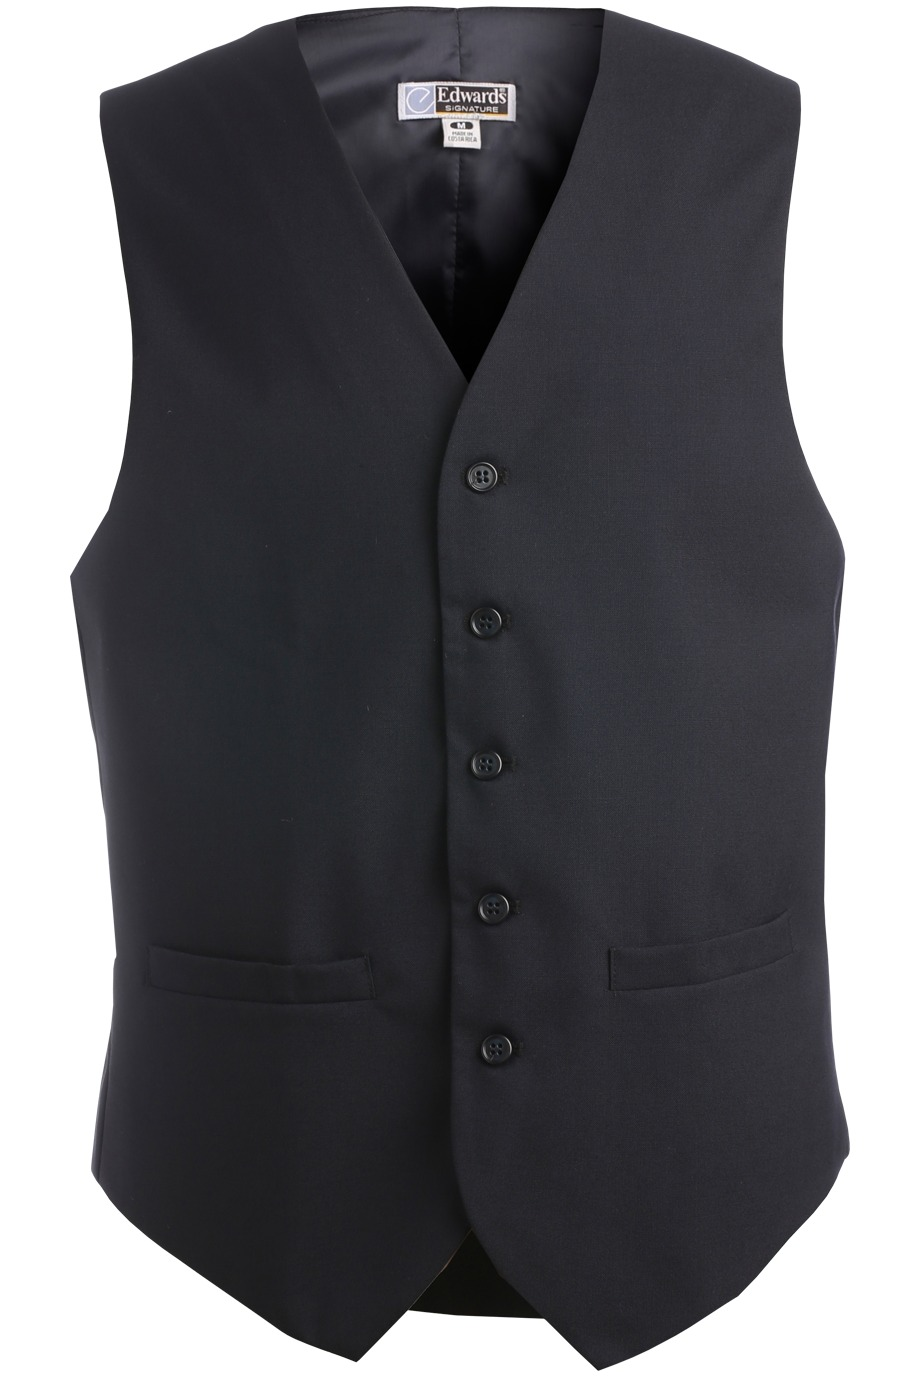 Edwards Garment 4680 - High Button Vest